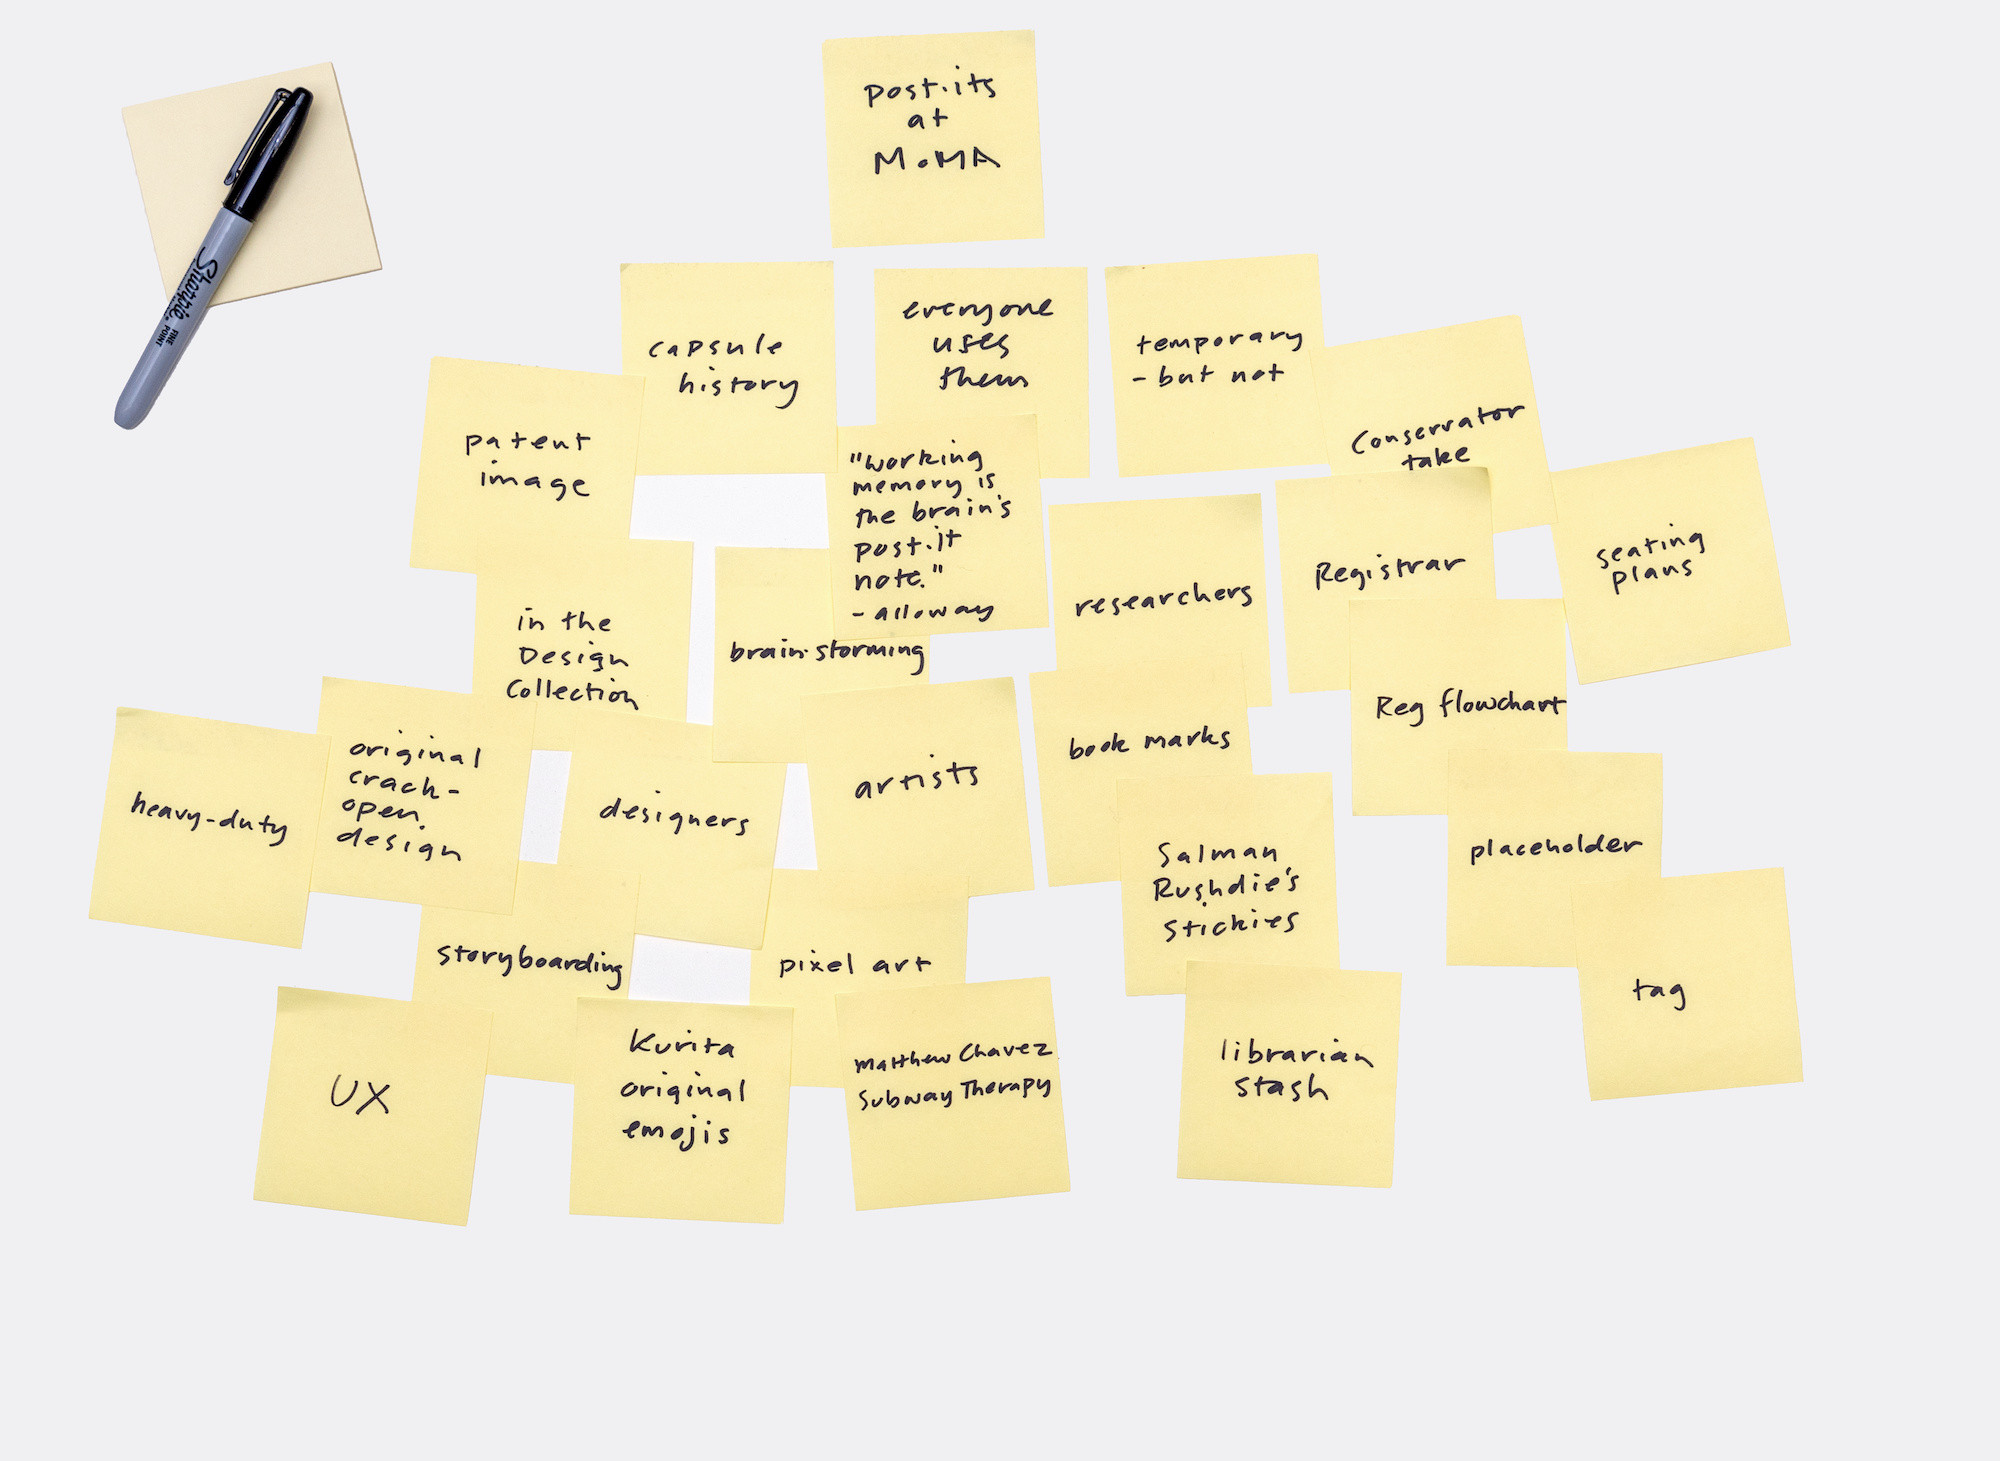 Post-its used to outline this article. Photo: Alejandro Merizalde